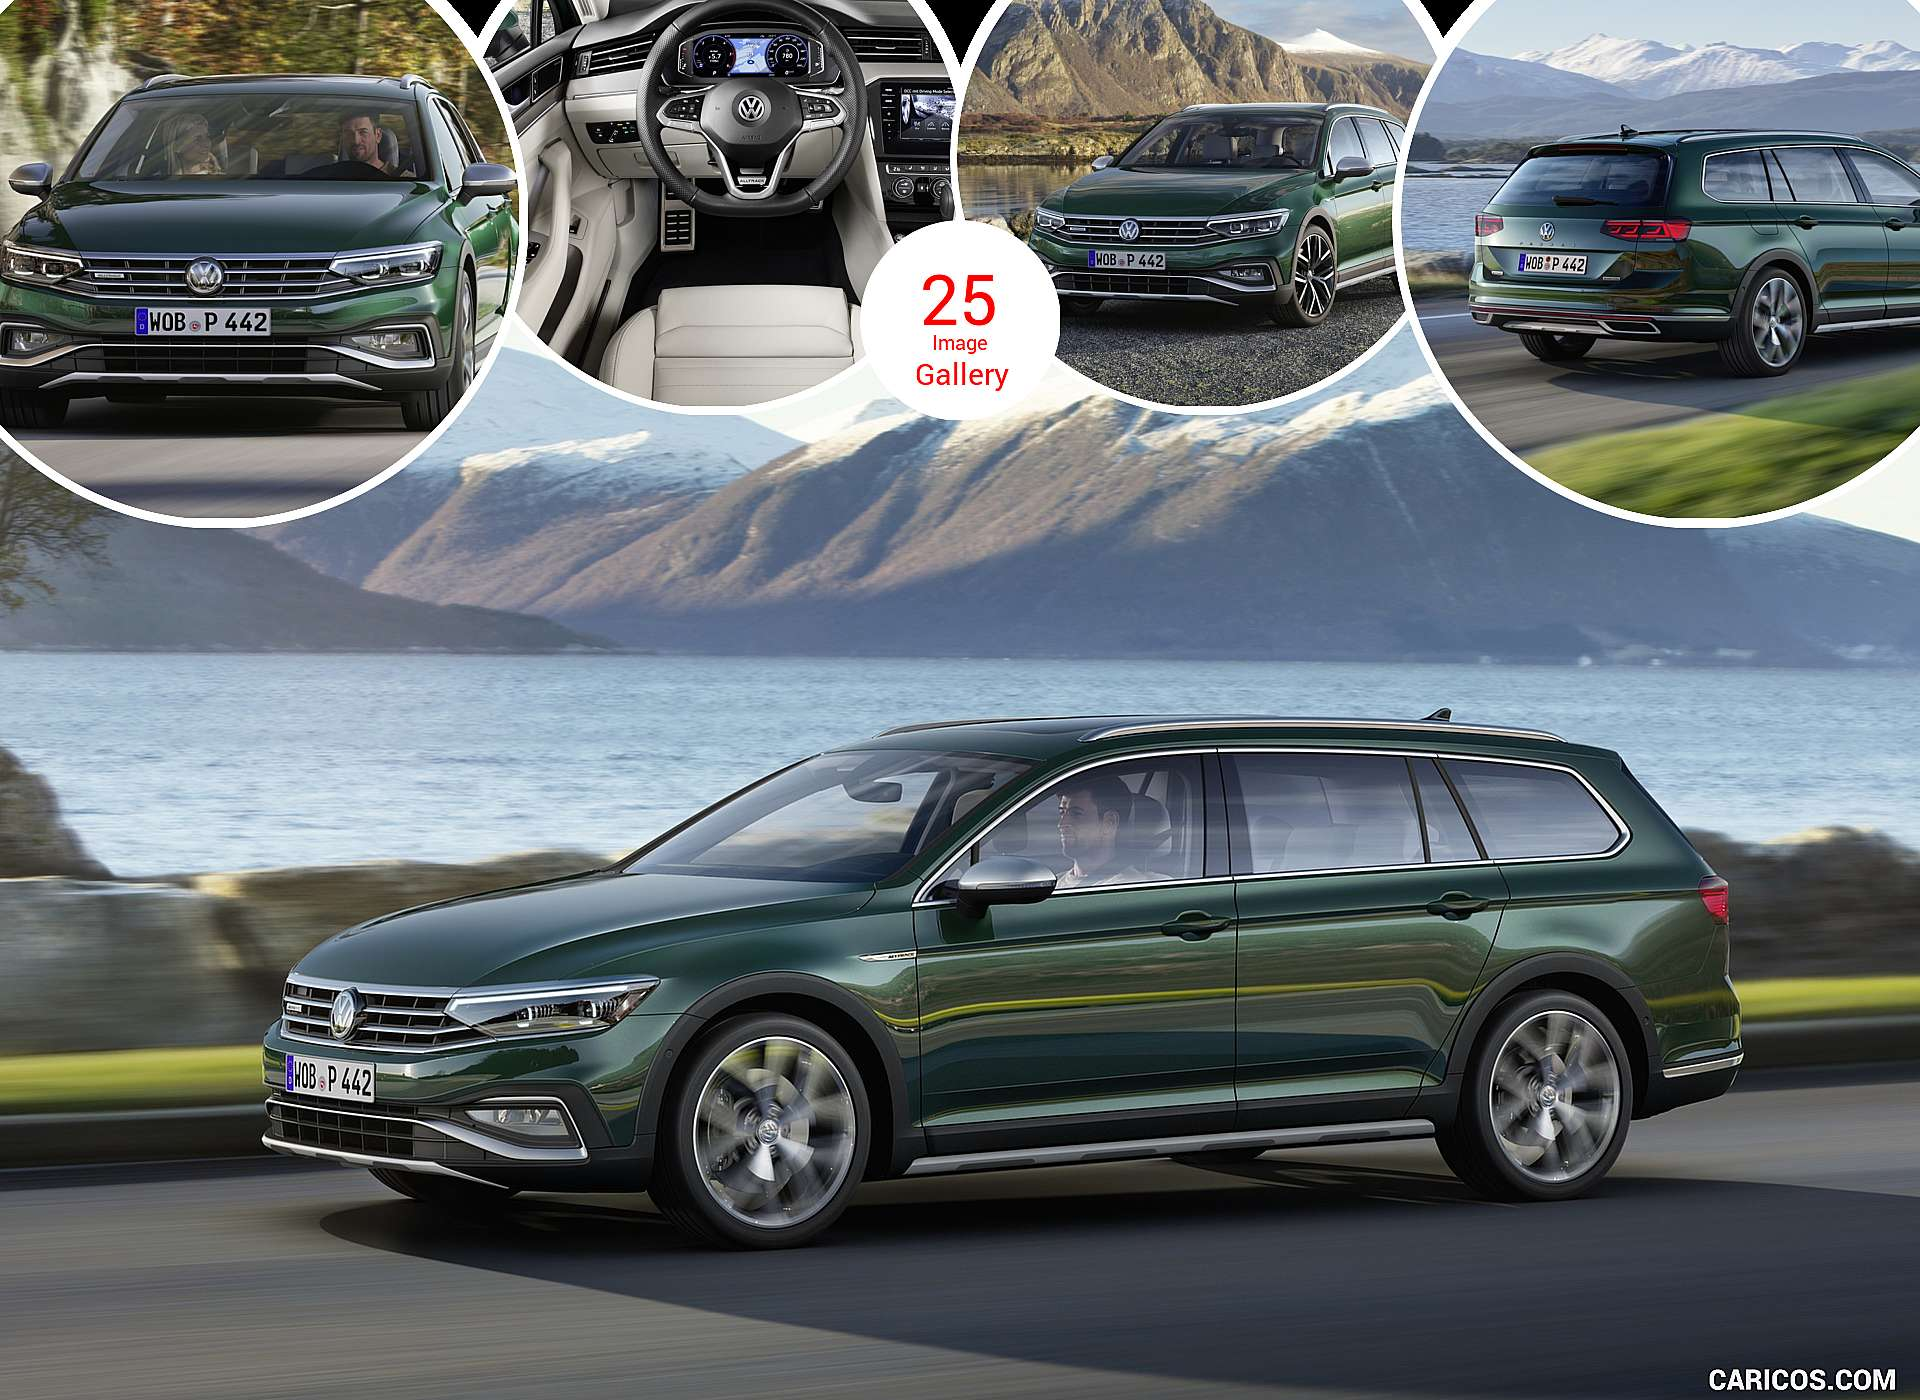 48 The 2020 Vw Passat Alltrack Images